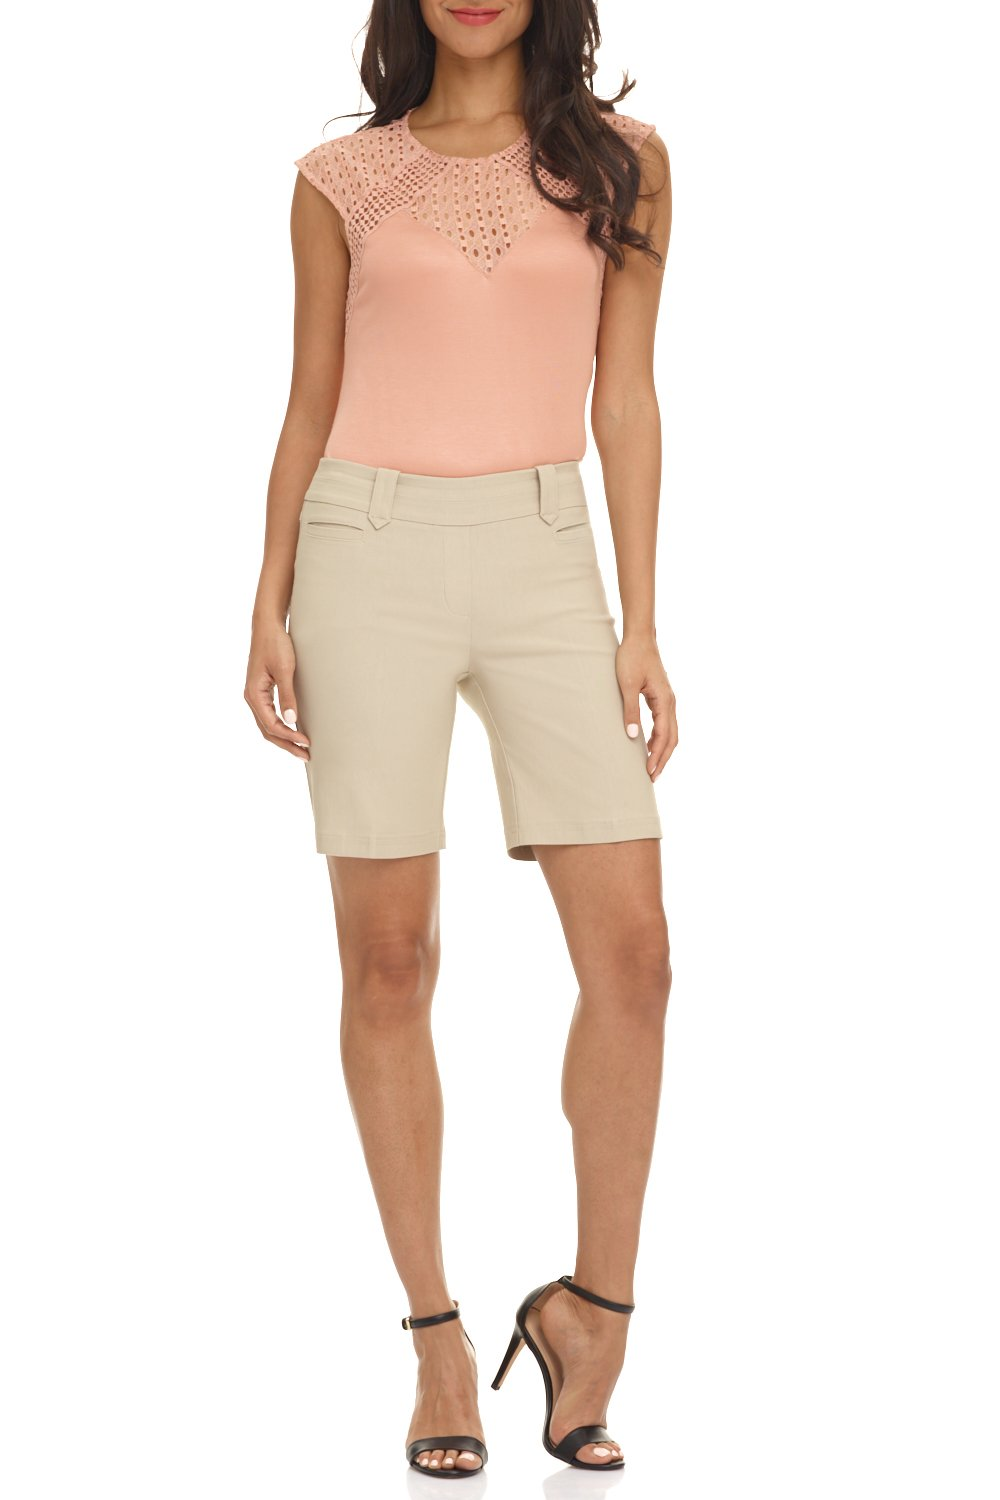 Rekucci Women's Ease in to Comfort Fit Perfection Modern Office Short (18,Stone)